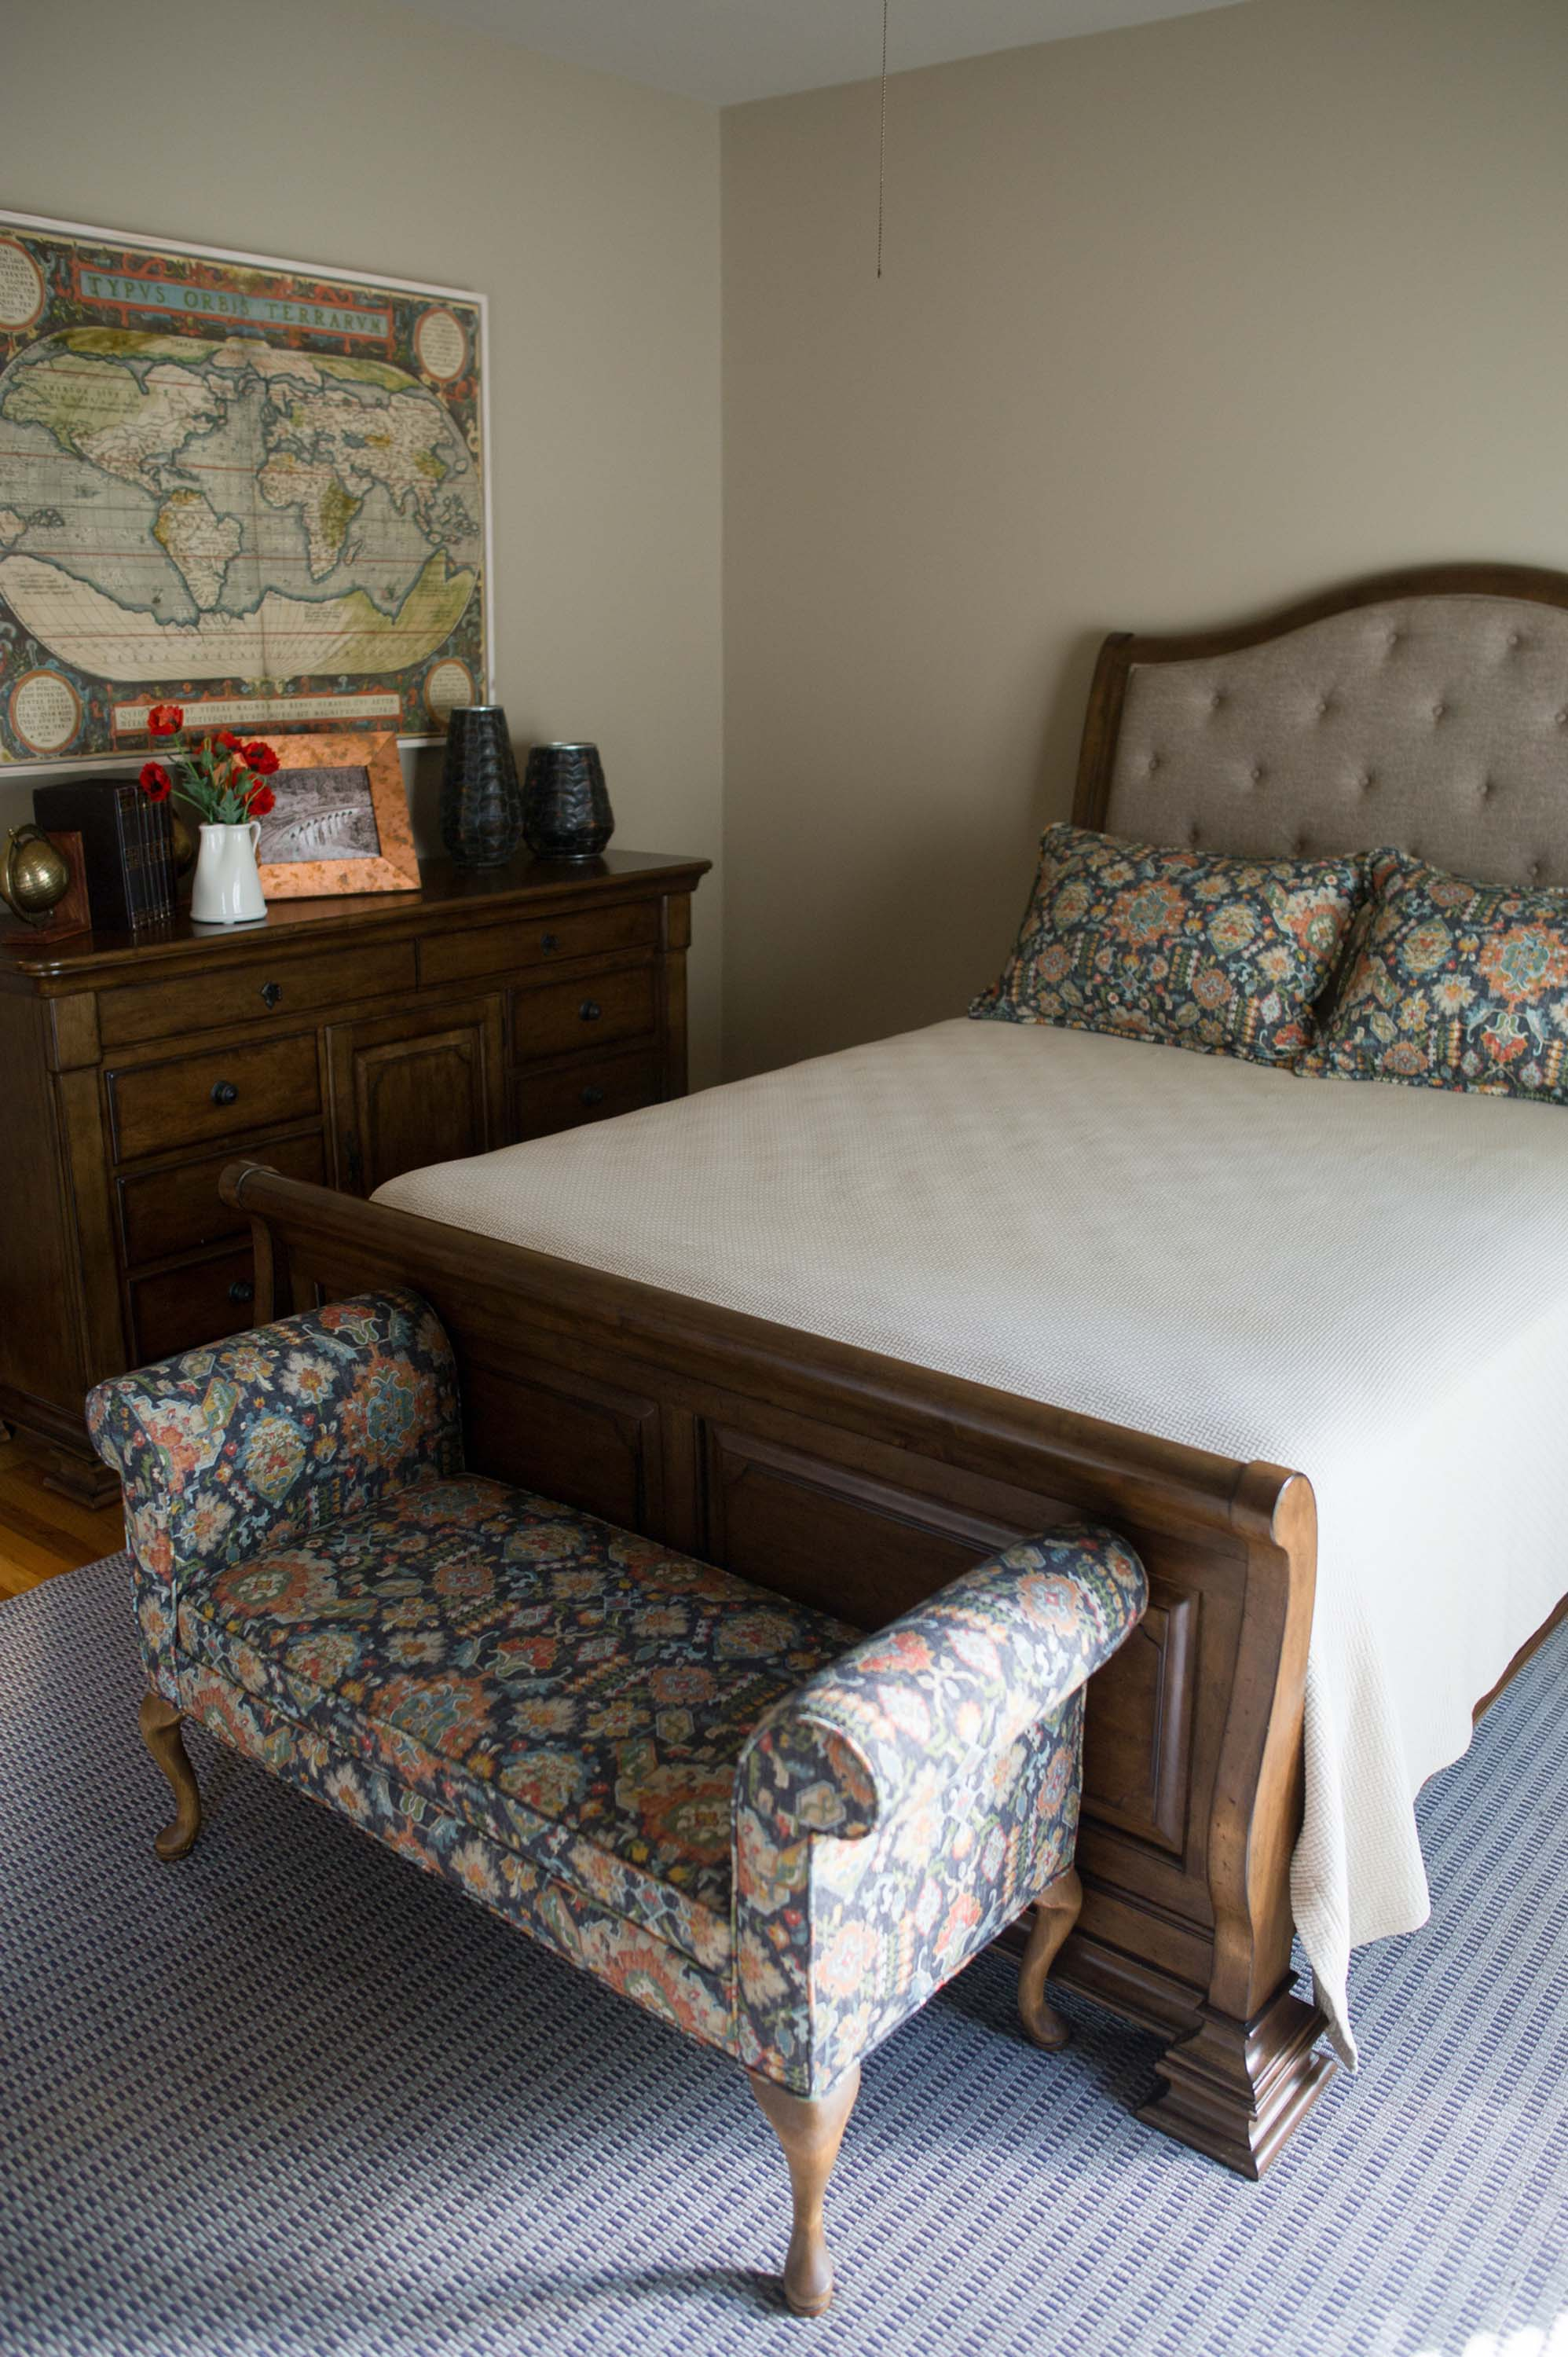 Guest Bedroom with Custom Bedding and Map